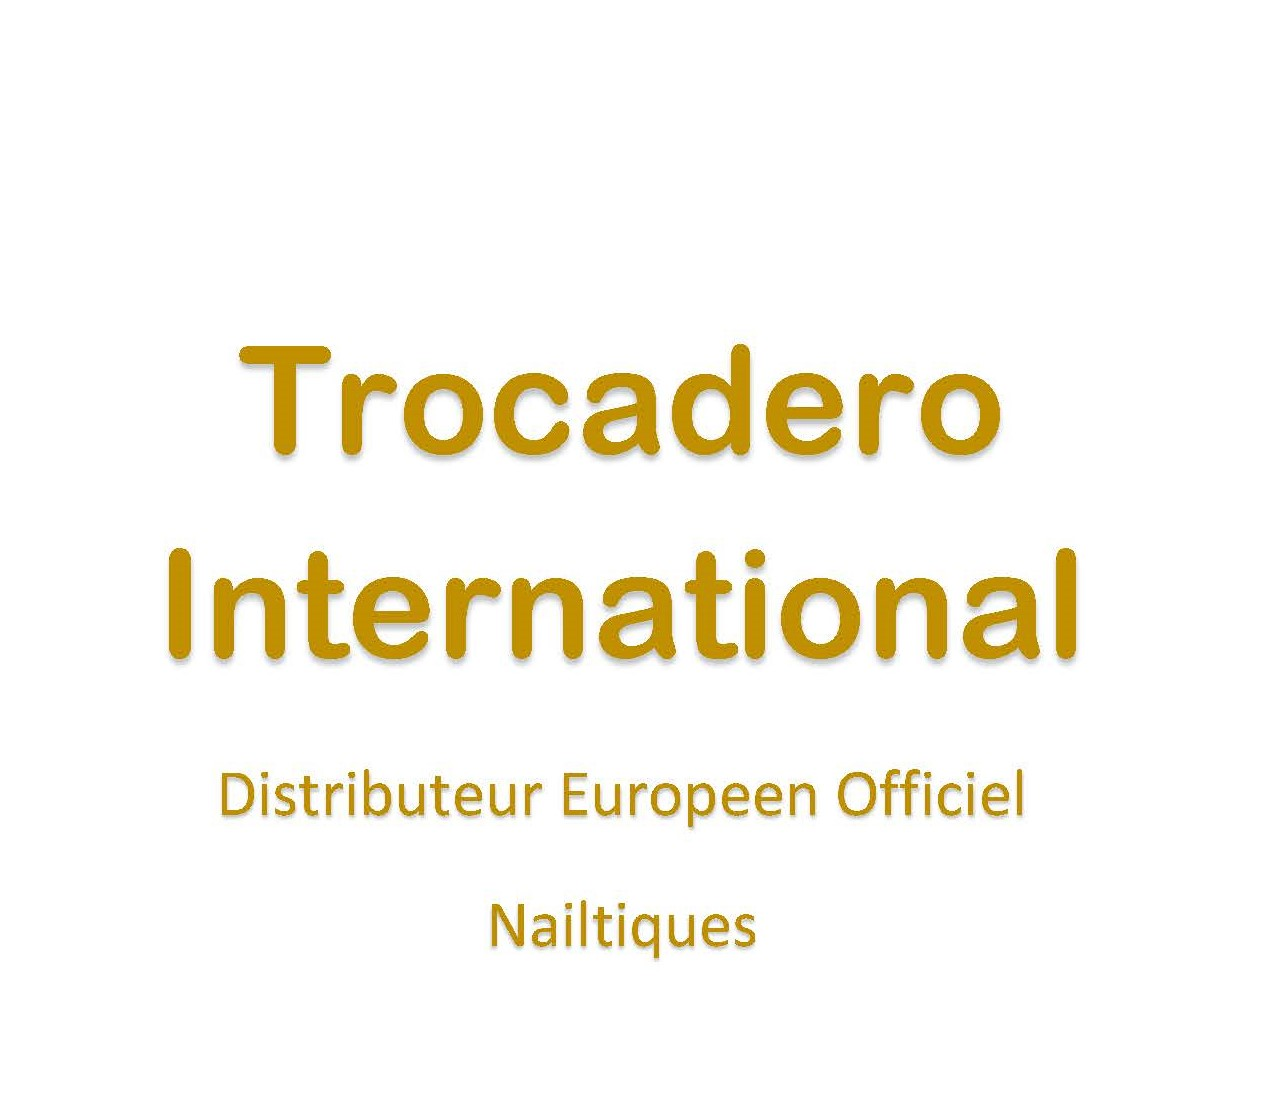 Nailtiques - Trocadero International - Distributeur Européen Officiel